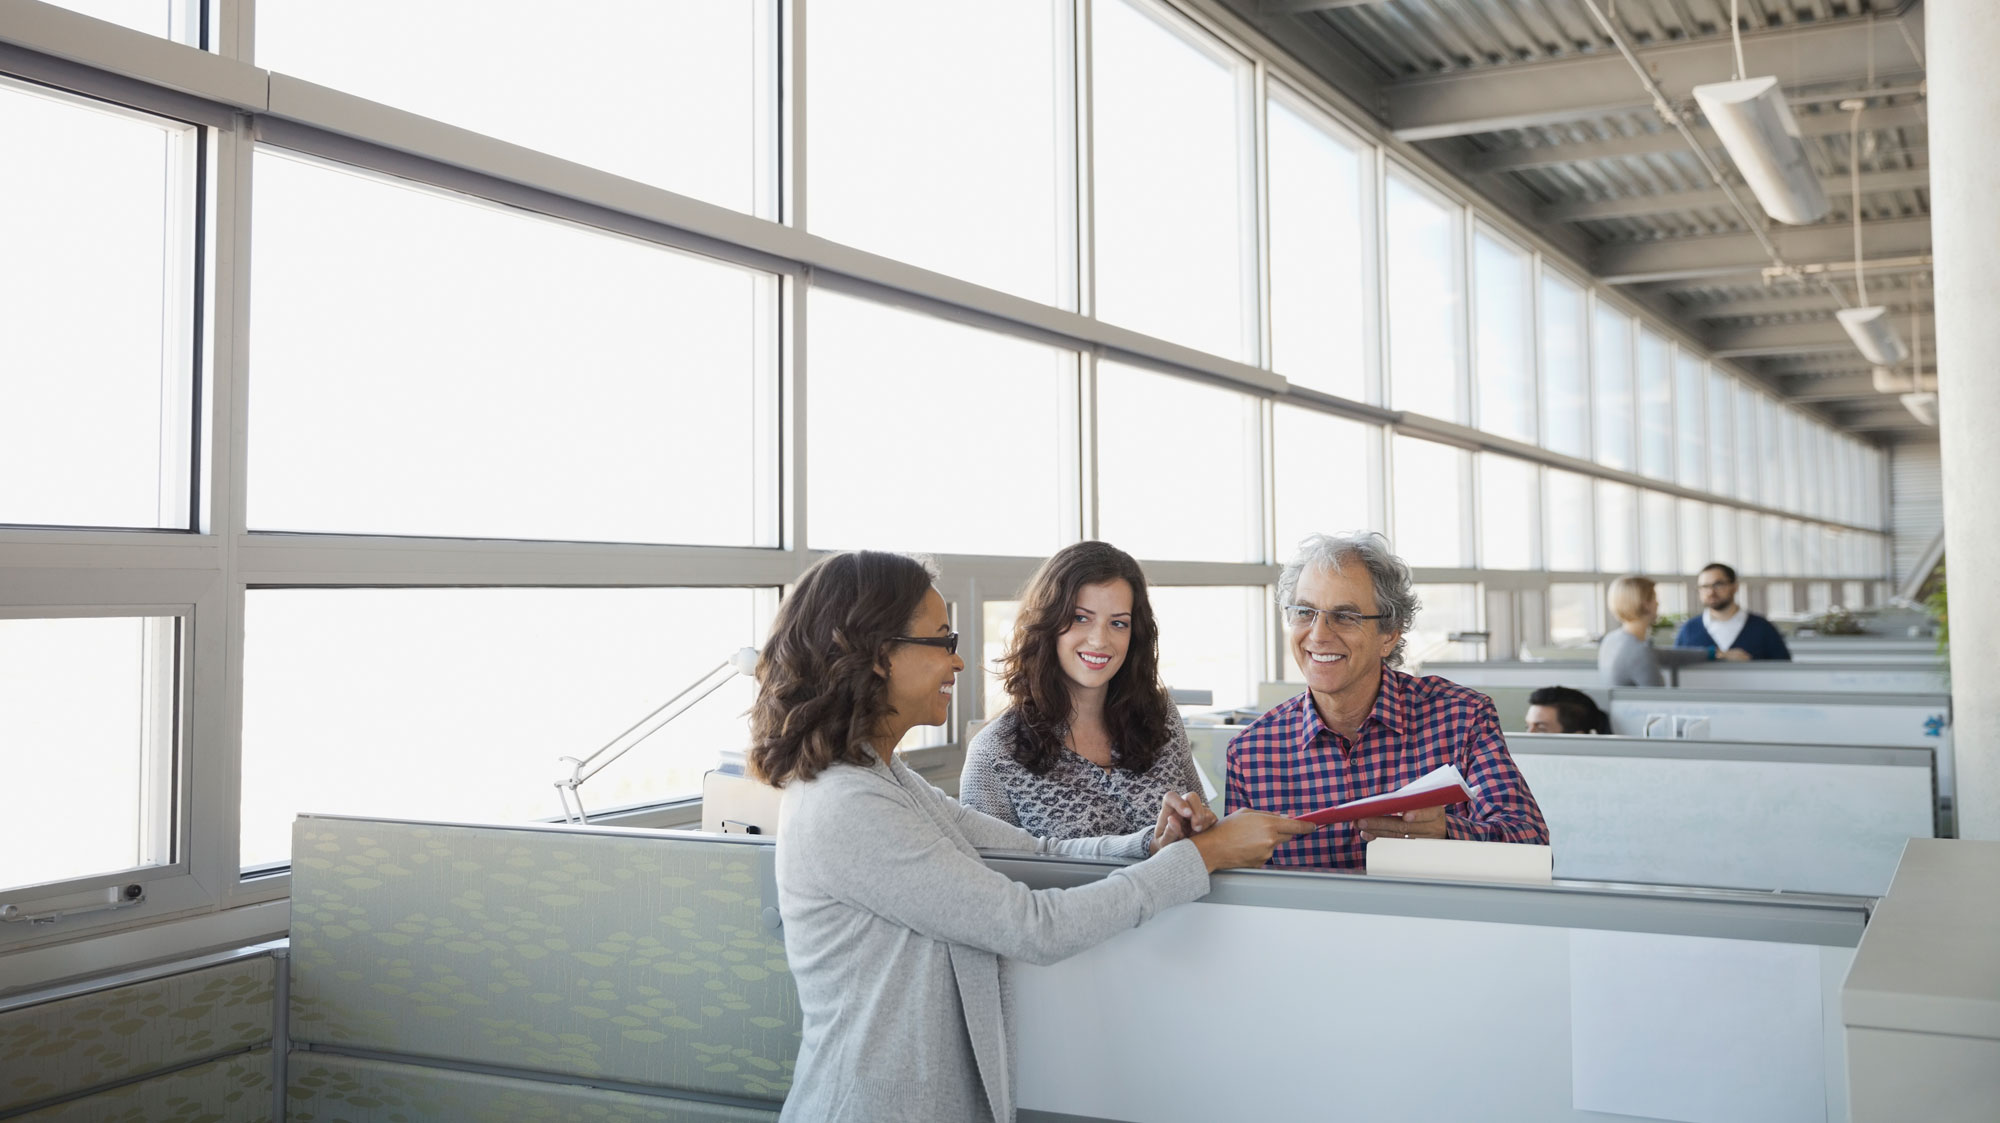 Two women and a man in a cubical exchanging a folder over the cubical wall